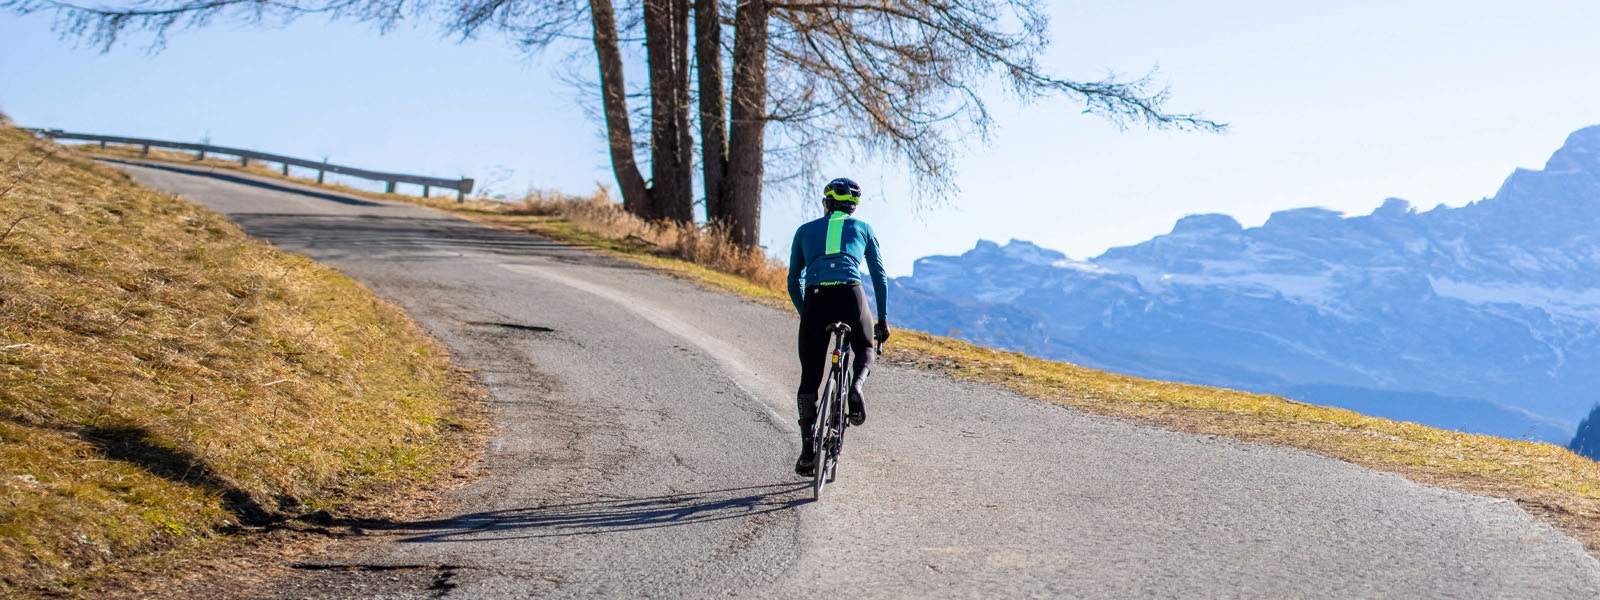 VEGA MULTI JACKET Warm and dry at every pedal stroke